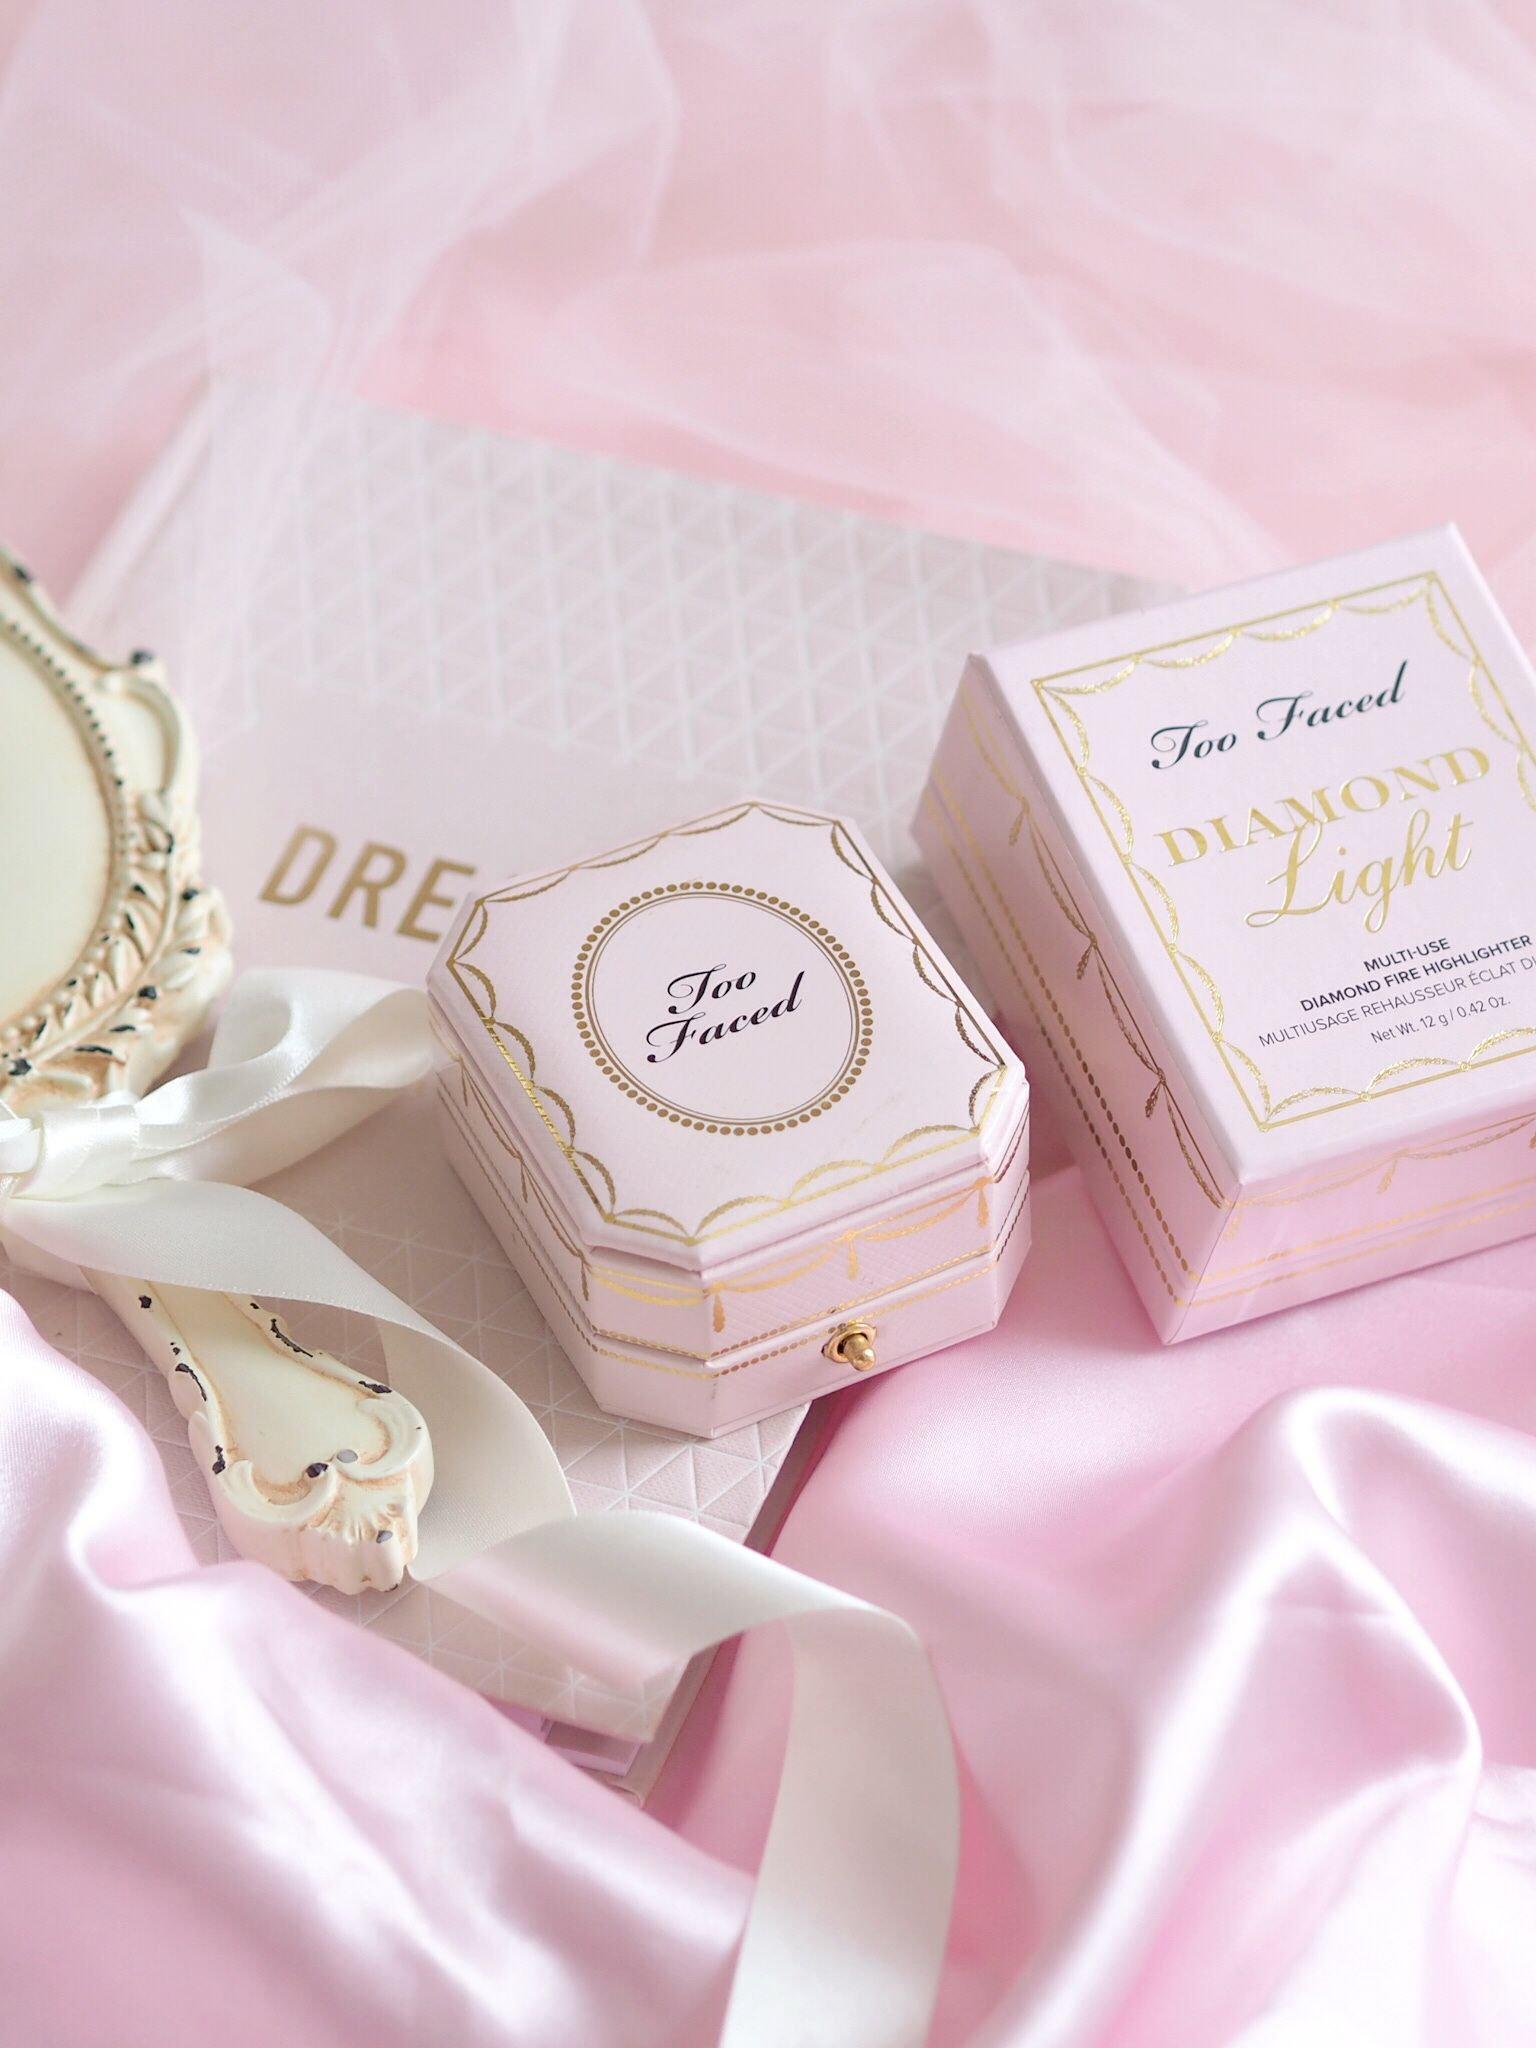 Diamonds Are A Girl's Best Friend: Too Faced Diamond Light Highlighter Review | Love Catherine